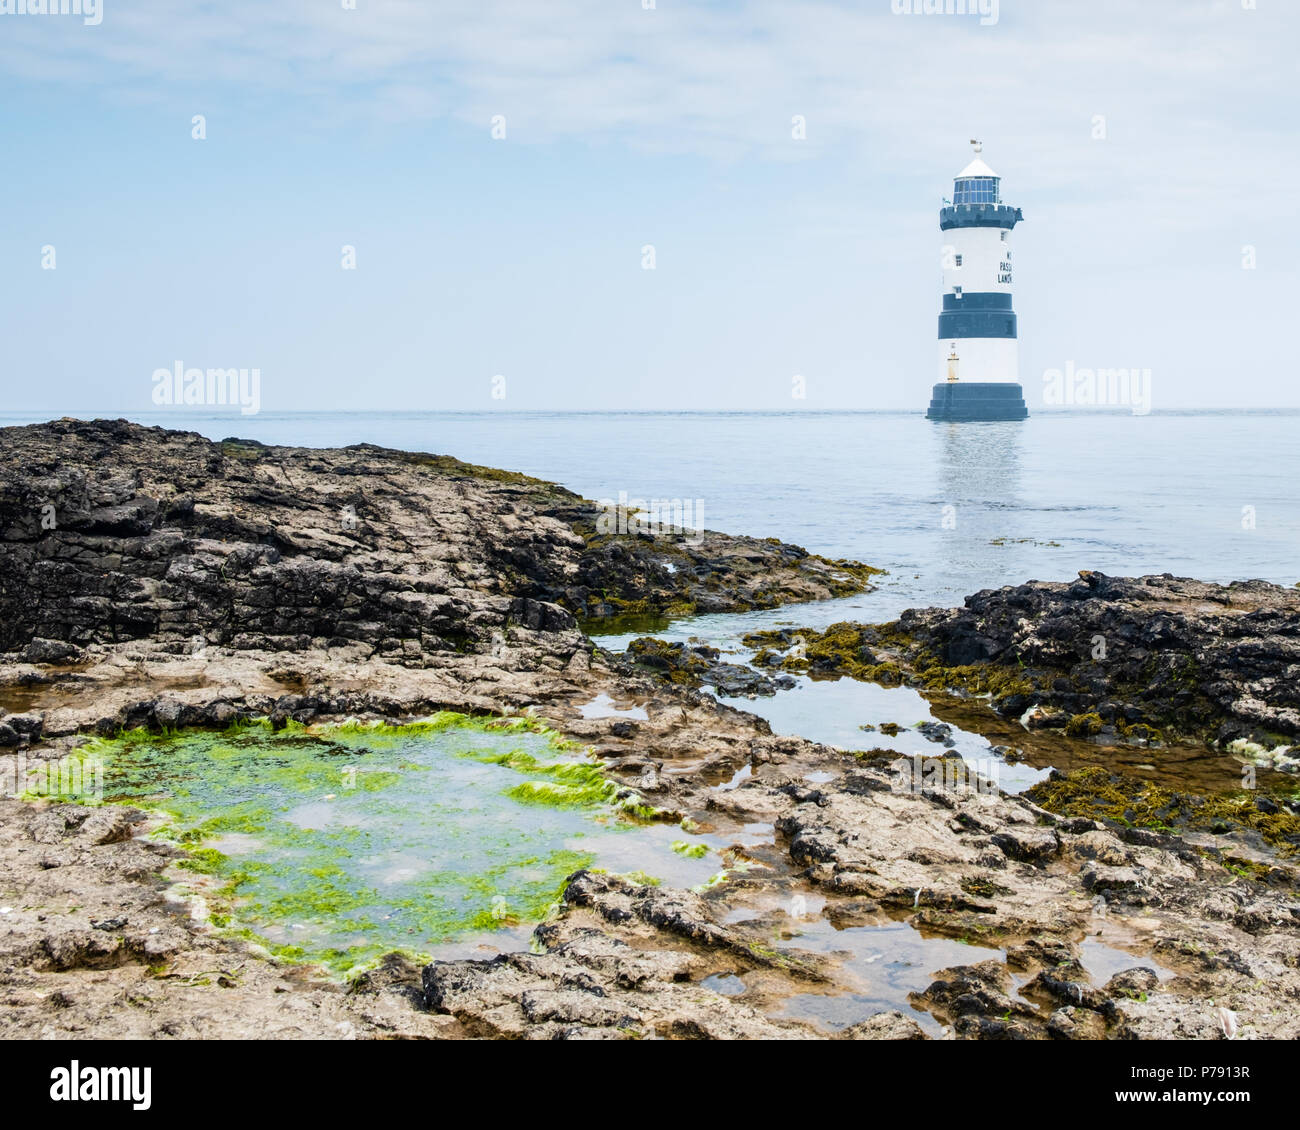 Penmon Lighthouse near Beaumaris, Anglesey, on a bright, sunny day with rocks and green algal rock pool in the foreground and a blue sky - Stock Image